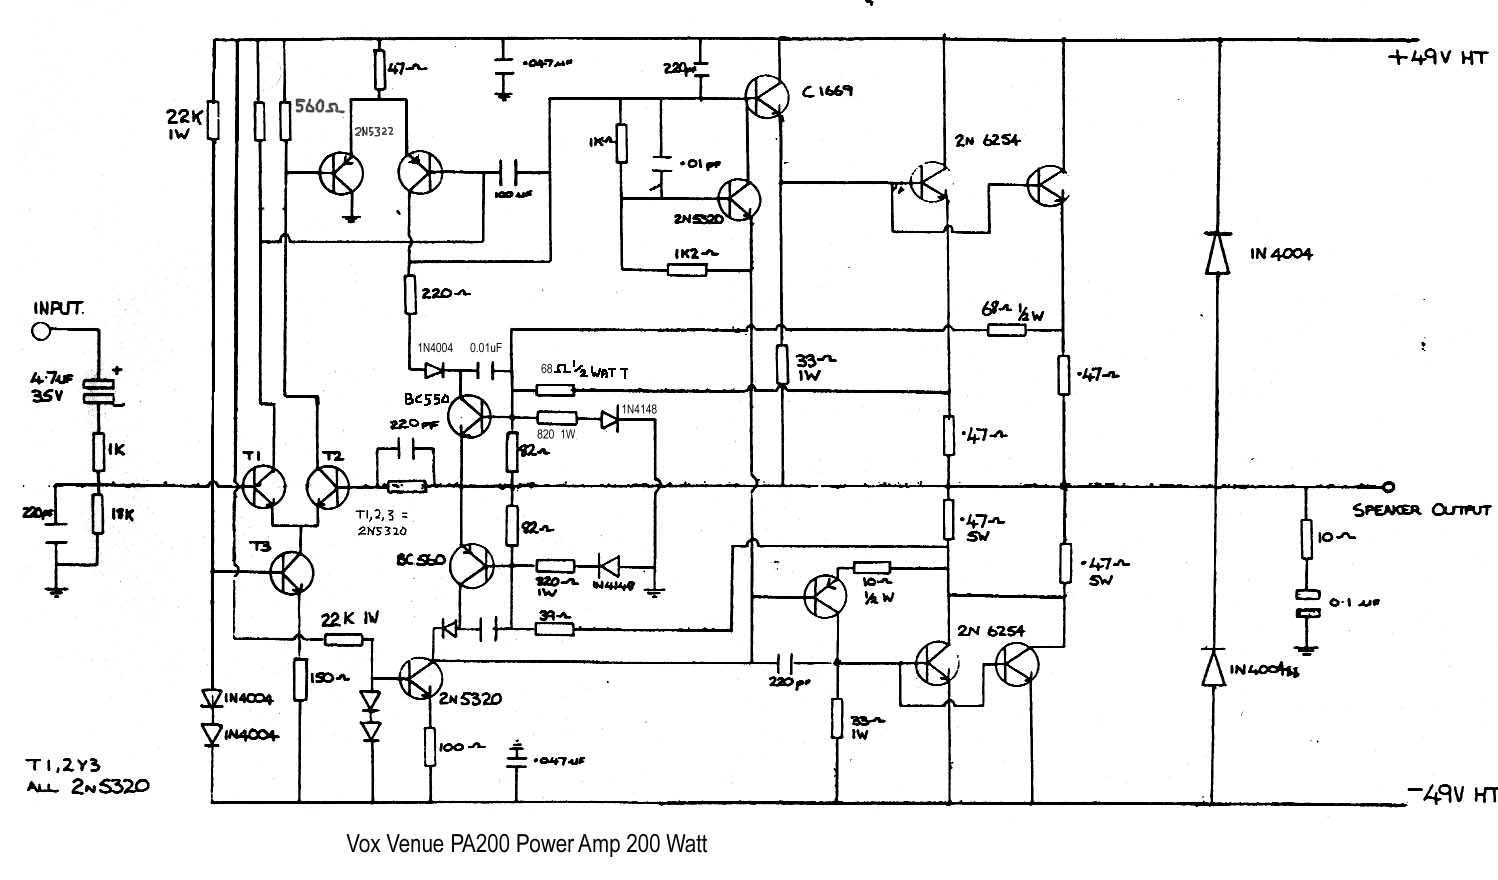 Schematic Diagram Of Amplifier 500 Watts K6 700 Watt Audio And Switching Power Supply Similiar Amp Keywords